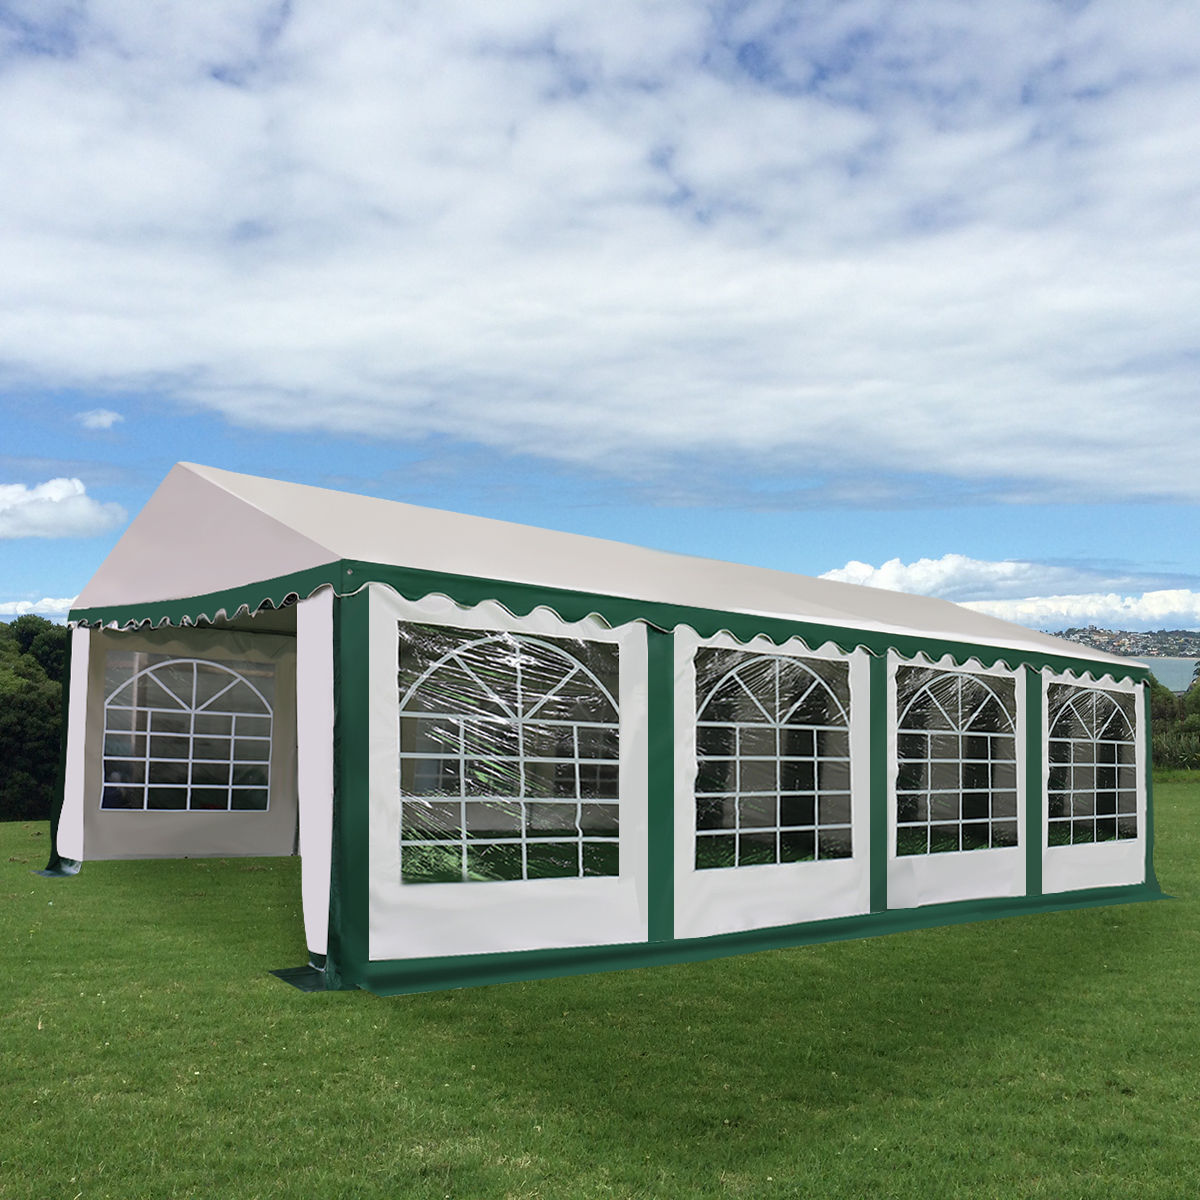 Costway 16 2/5'X26' Tent Shelter Heavy Duty Outdoor Party Wedding Canopy Carport Green